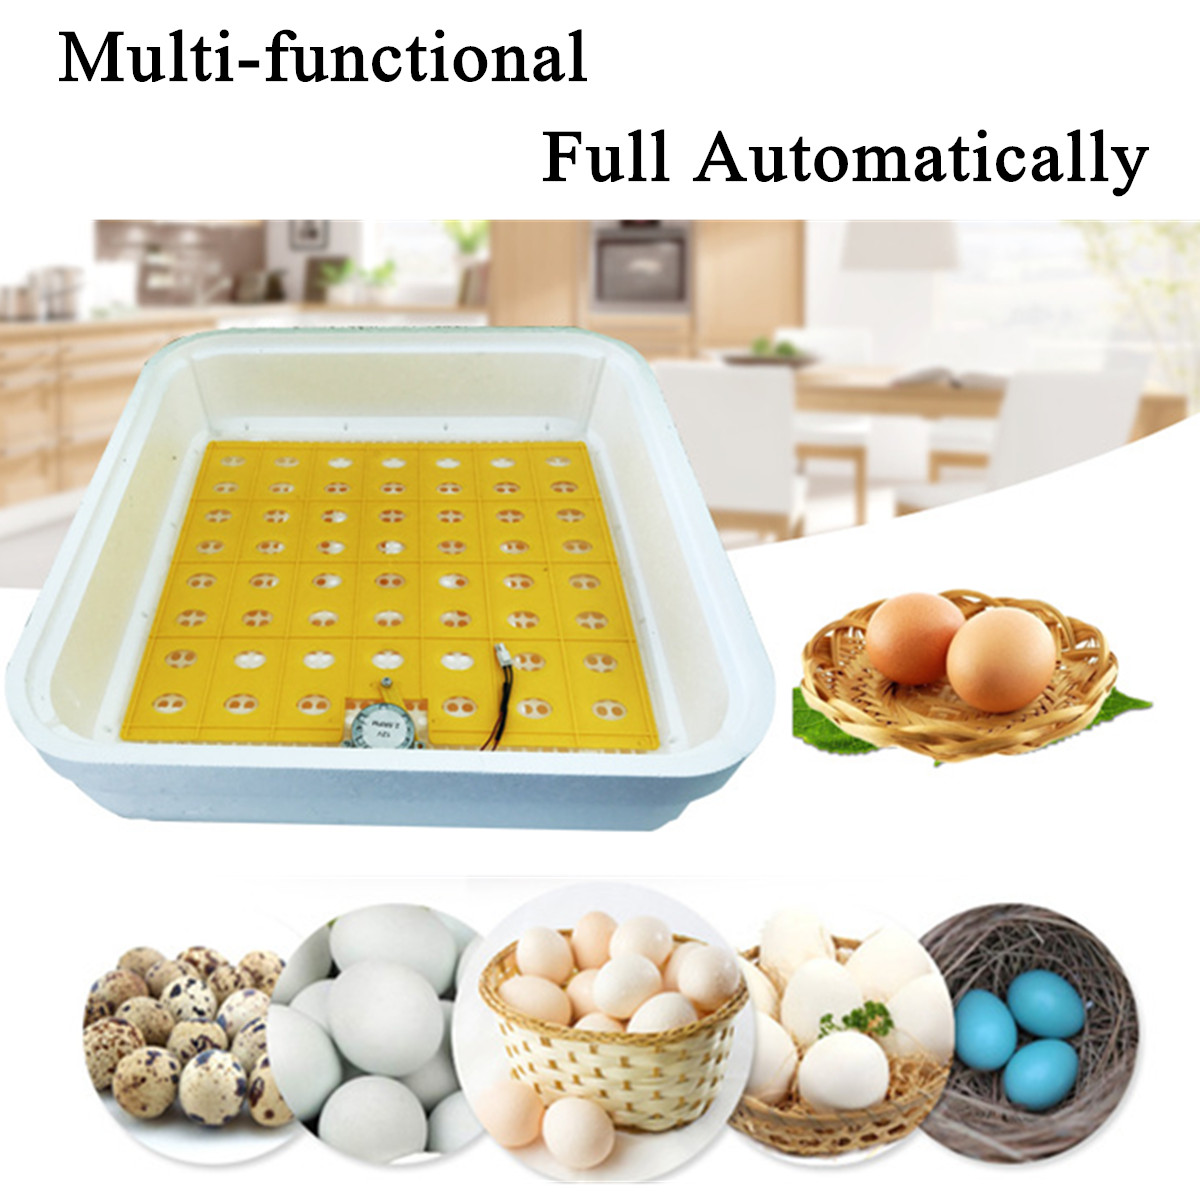 Automatic Egg Hatcher Machine 55 Eggs Incubator Fully LED Turner Chicken Duck Digital Display Smart Sensitive US/EU Plug